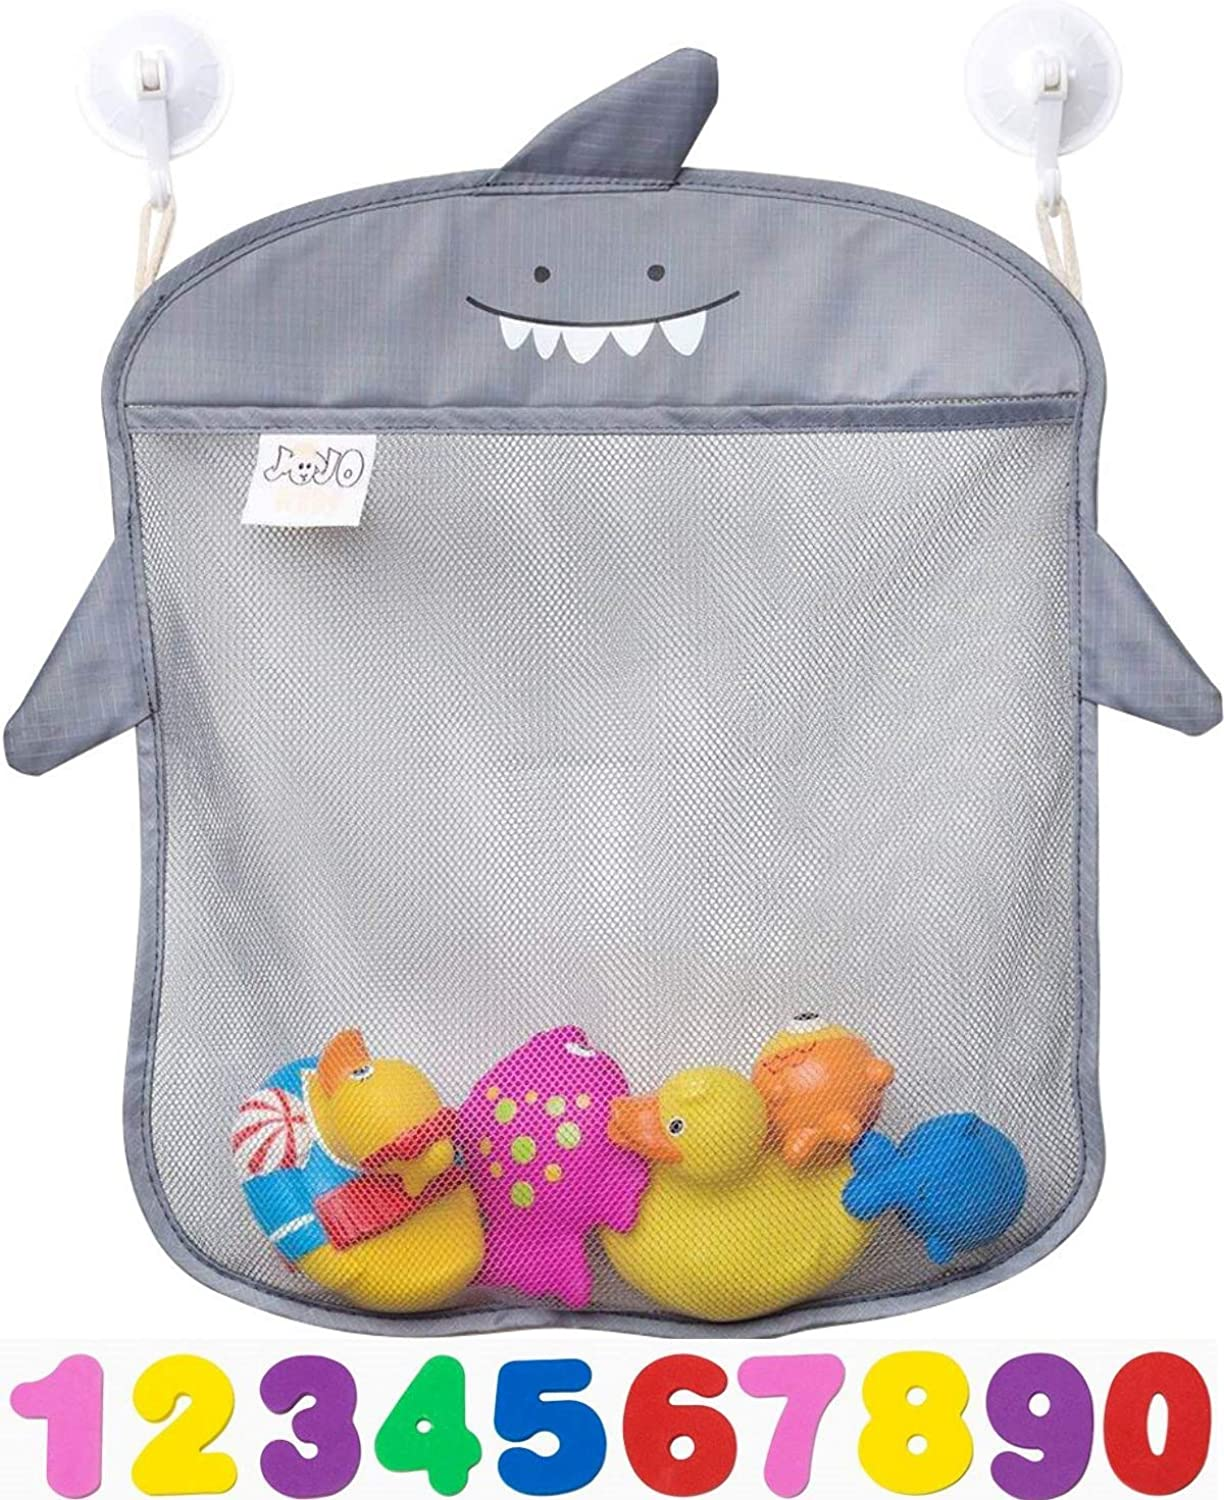 Bath Toy Storage by Jojo-KidsKeep Toys Dry without MoldSuperior Quality and Non Toxic Toys Organizer inspired by KidsSet of 2 Large Quick Dry Bathtub Mesh Net with 2x Hanging Hooks 4x Suction Cup